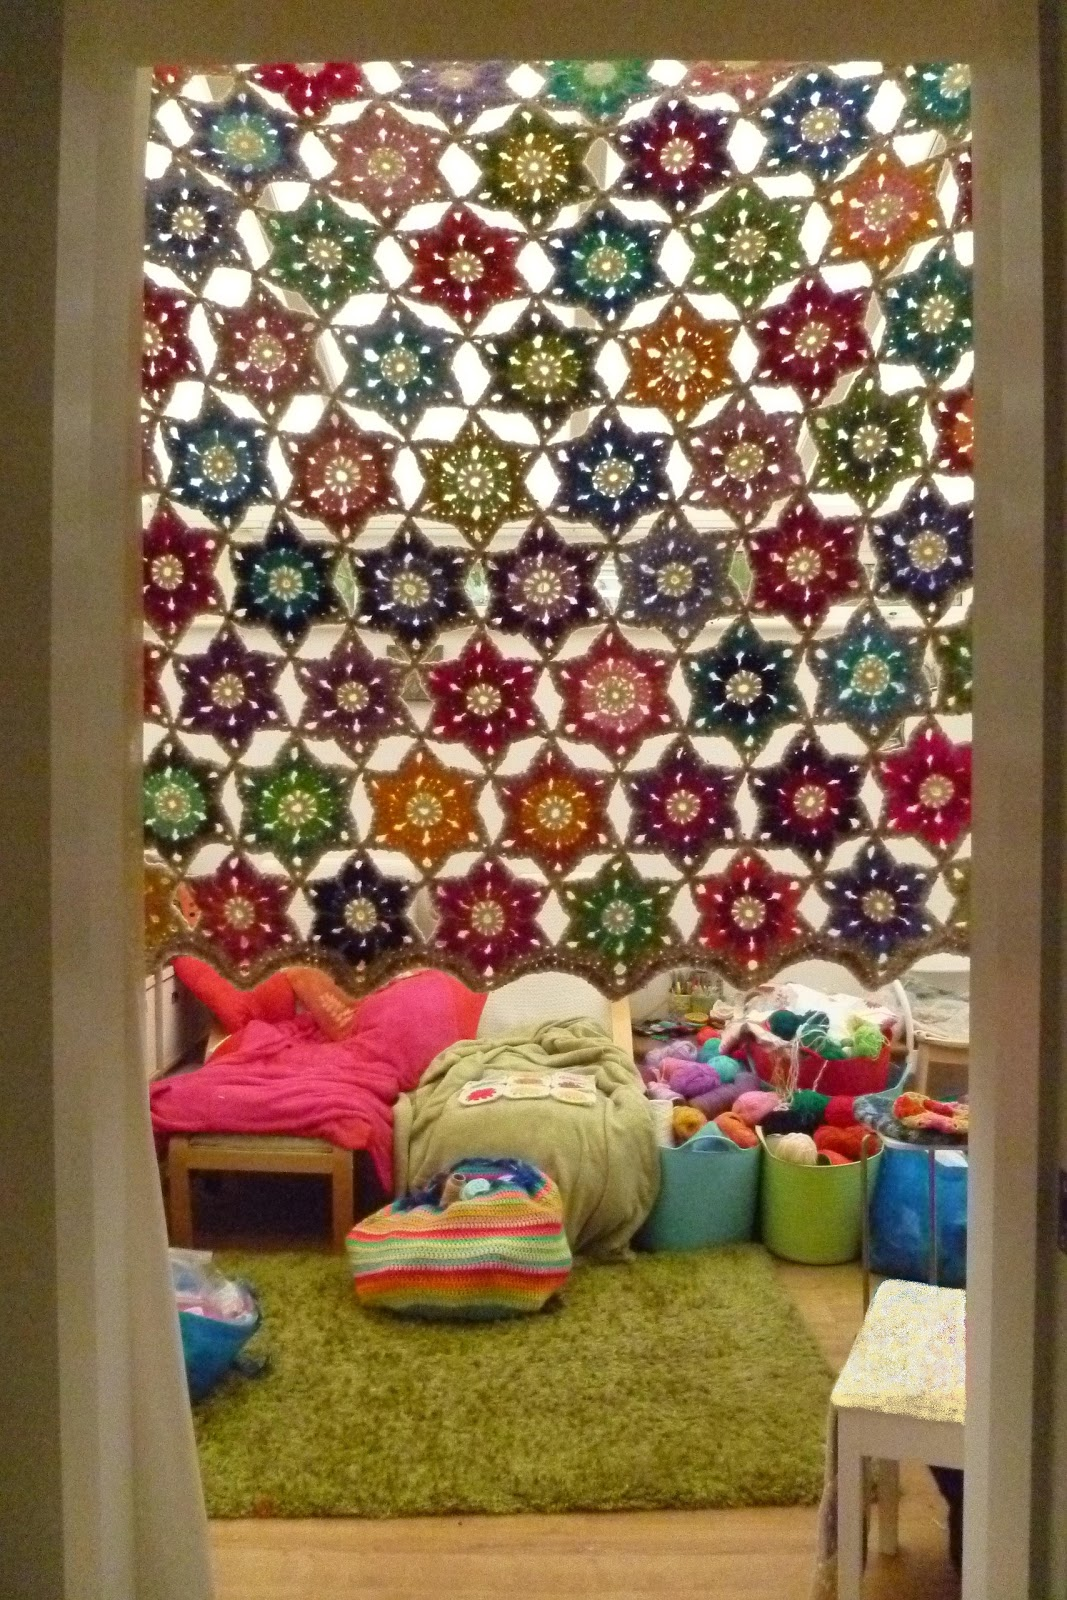 Free Crochet Pattern Flower Curtain : African Flowers, Crochet Granny Squares and colorful ...